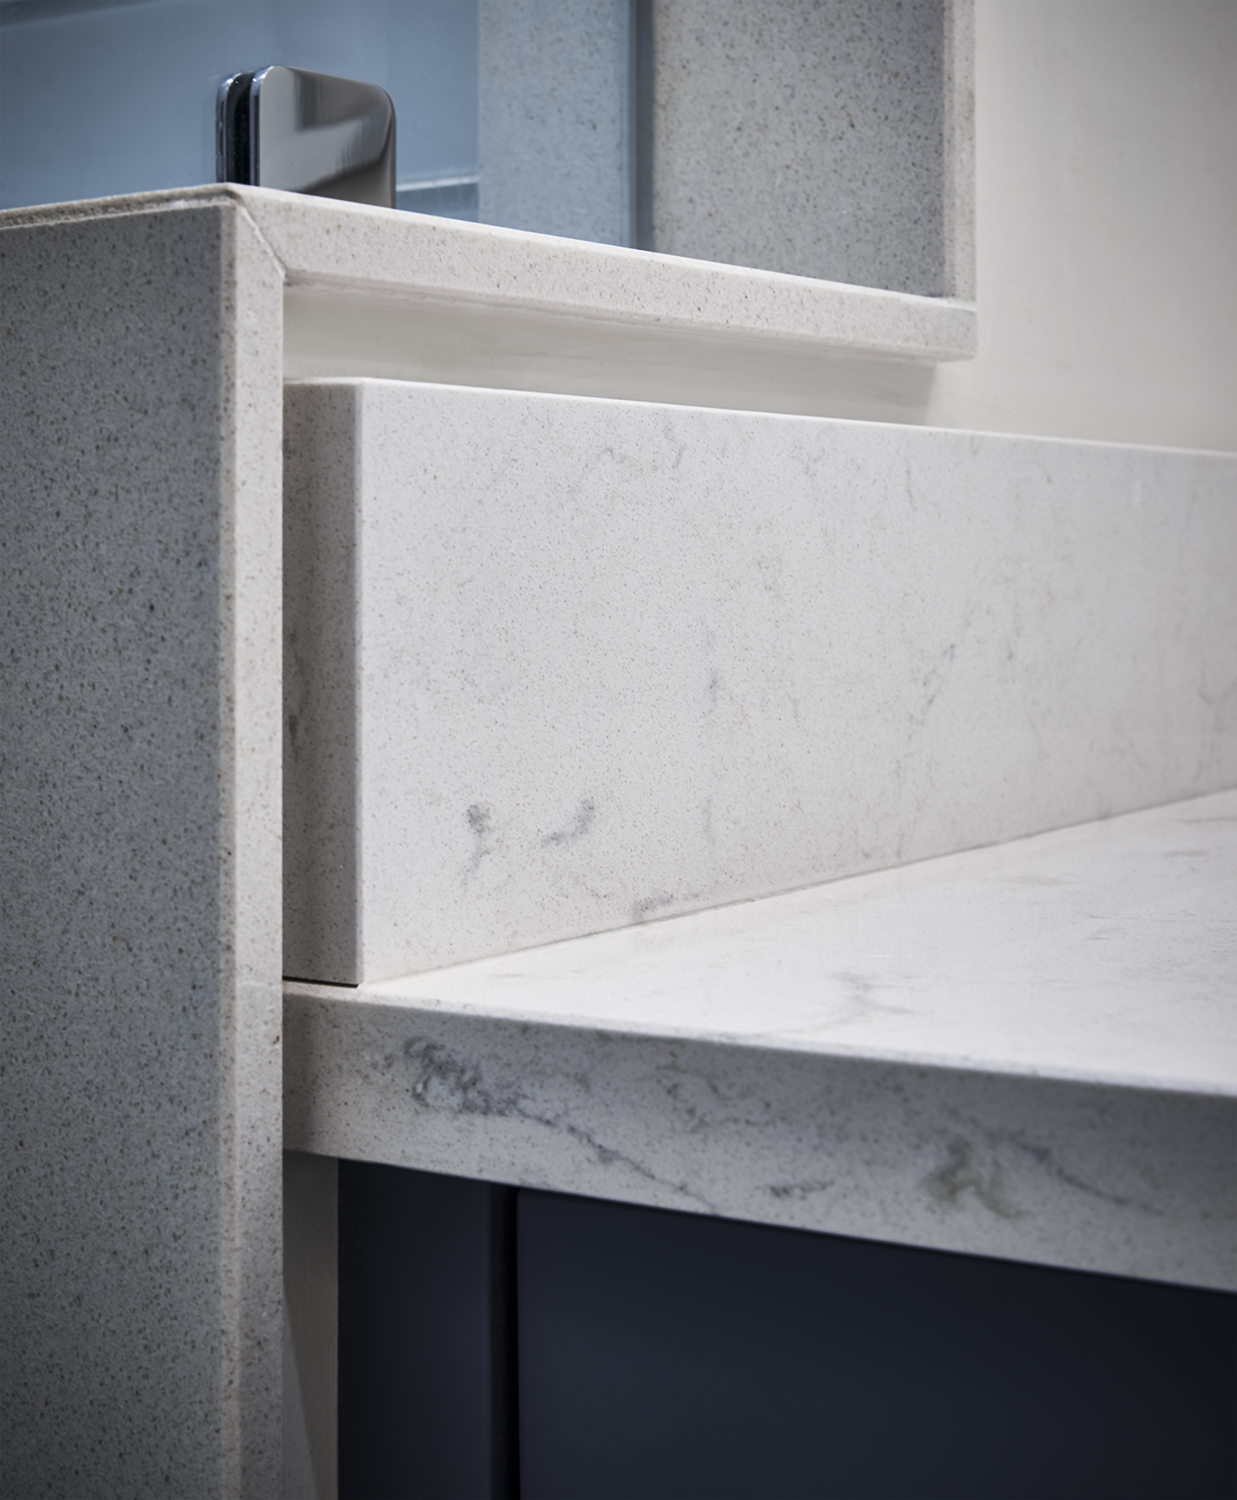 Cambria quartz counter top detail shot